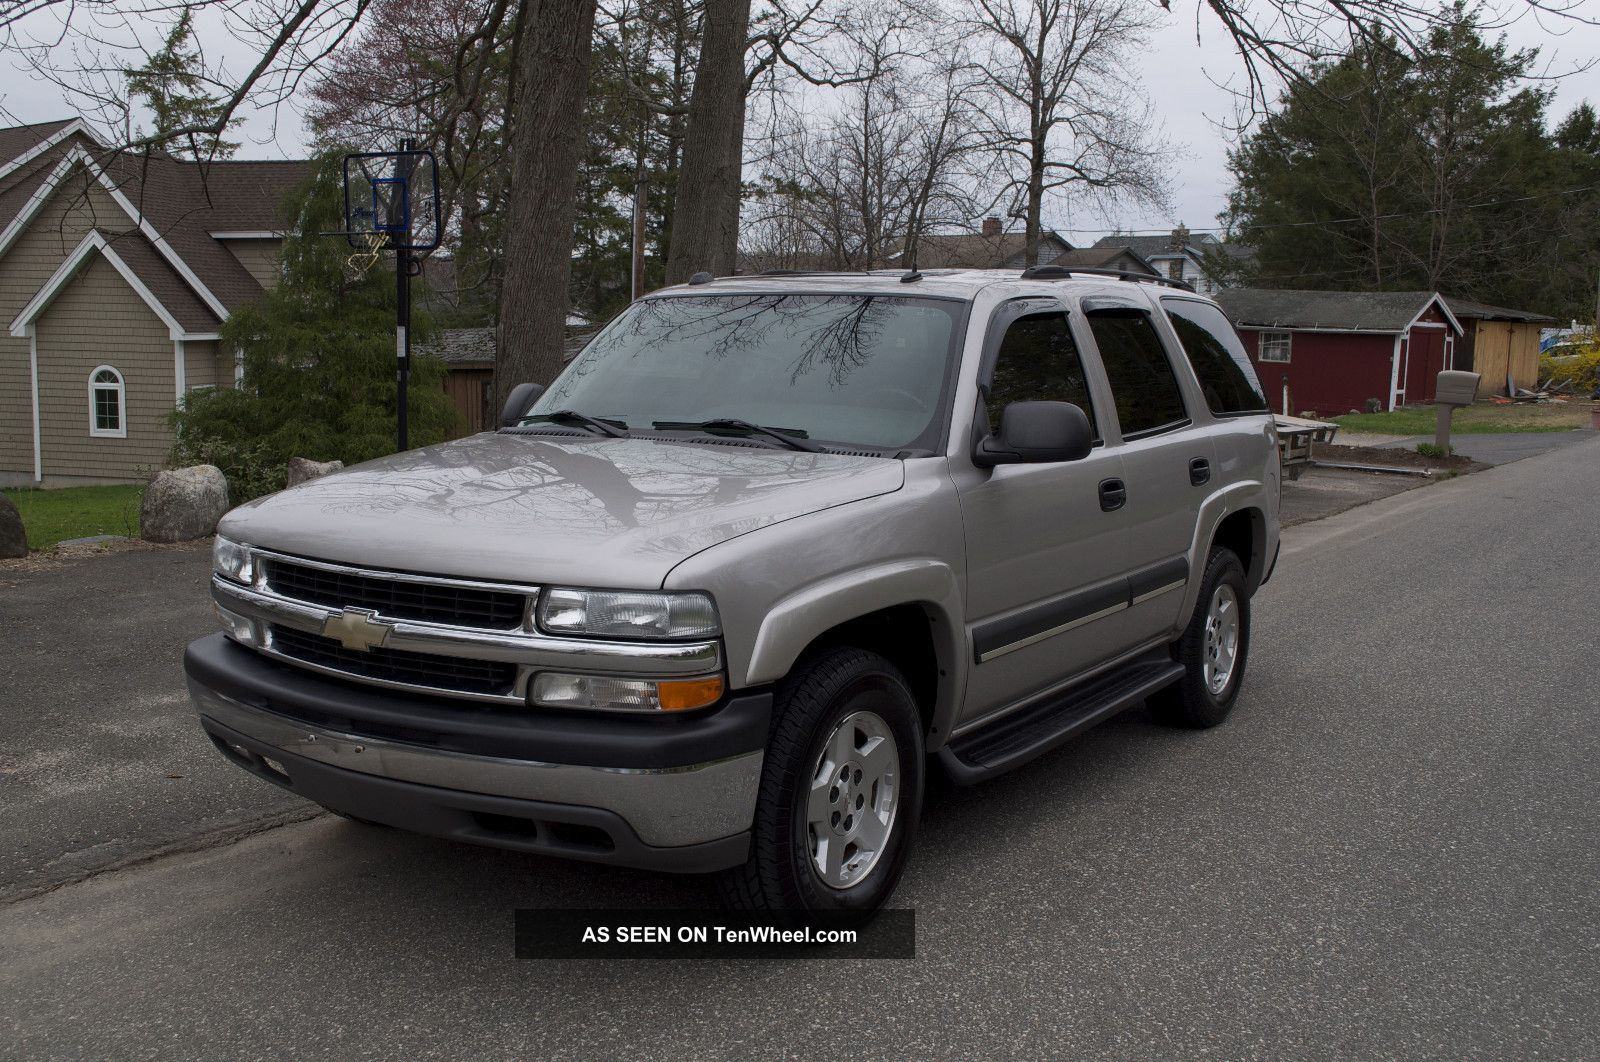 2004 chevrolet tahoe ls bose 3rd row seat. Black Bedroom Furniture Sets. Home Design Ideas